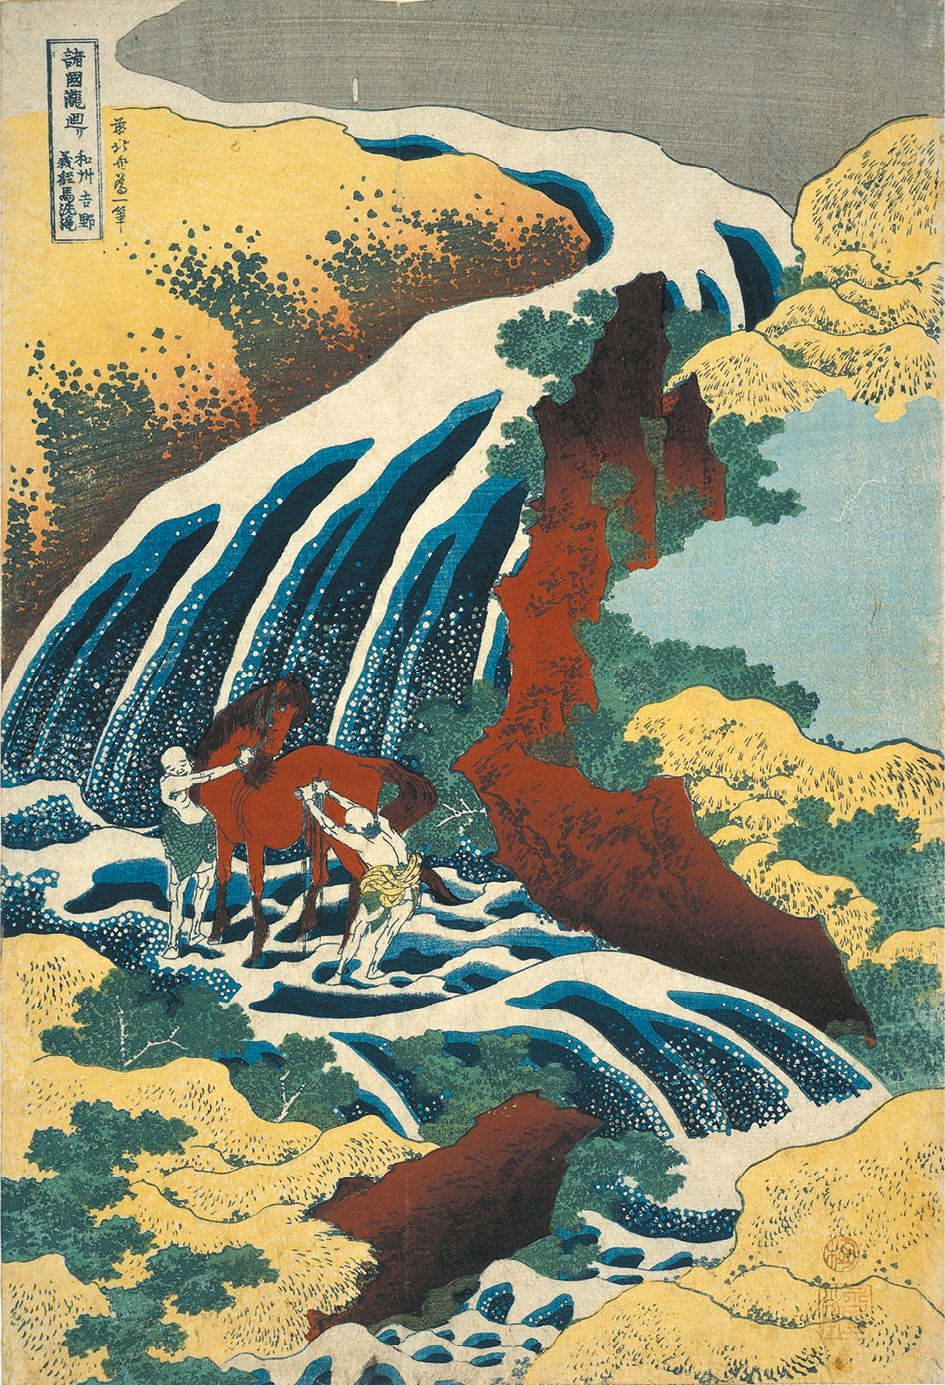 The waterfall where Yoshitsune washed his horse in Yoshino, Yamato province from Tour of Waterfalls in Various Provinces. Colour woodblock, 1833. Bequeathed by Charles Shannon RA. © The Trustees of the British Museum.